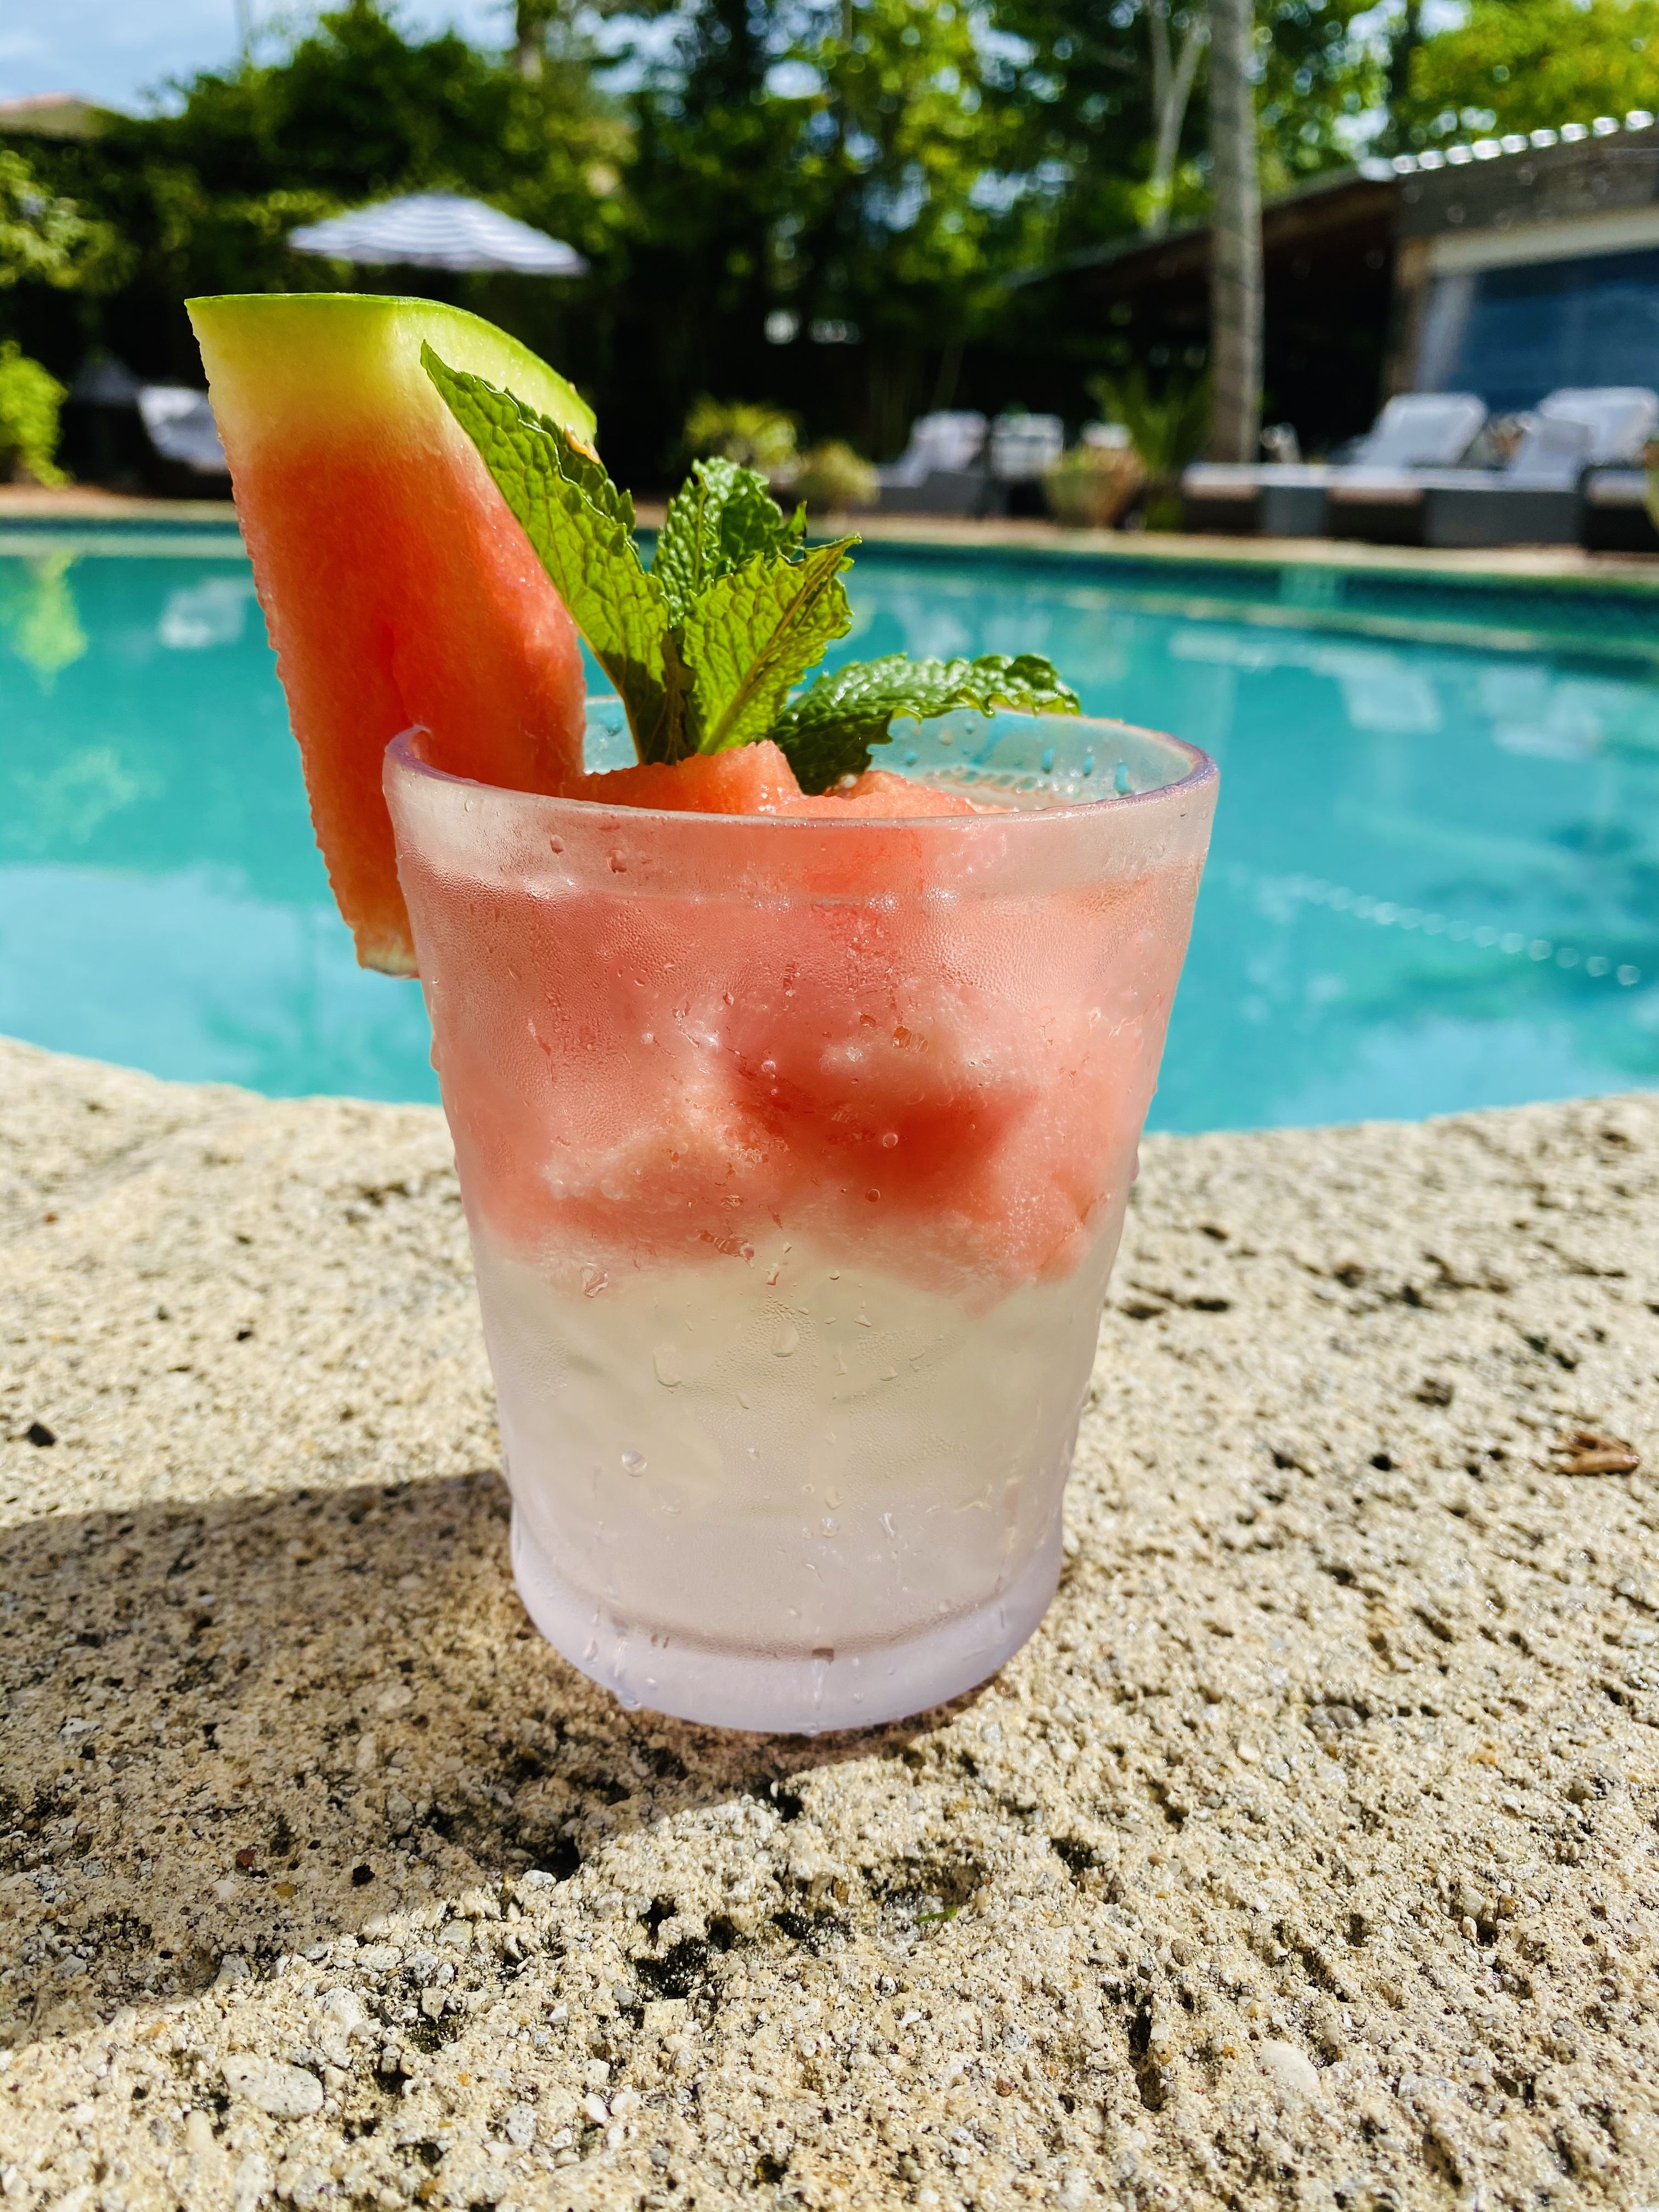 🍉🍸 Watermelon Vodka Martini. #EscapeEscalante and enjoy a refreshing drink poolside. ~ ~ ~ #summer #vacation #travel #cocktail #hiddenoasis #naples #drinks #hoteldeals #courtyard #getaways #beach #happyhour #downtownnaples #swflfoodies #escalantehotel #5thavesouth #foodies #foodlover #escape #summervibe #placetobe